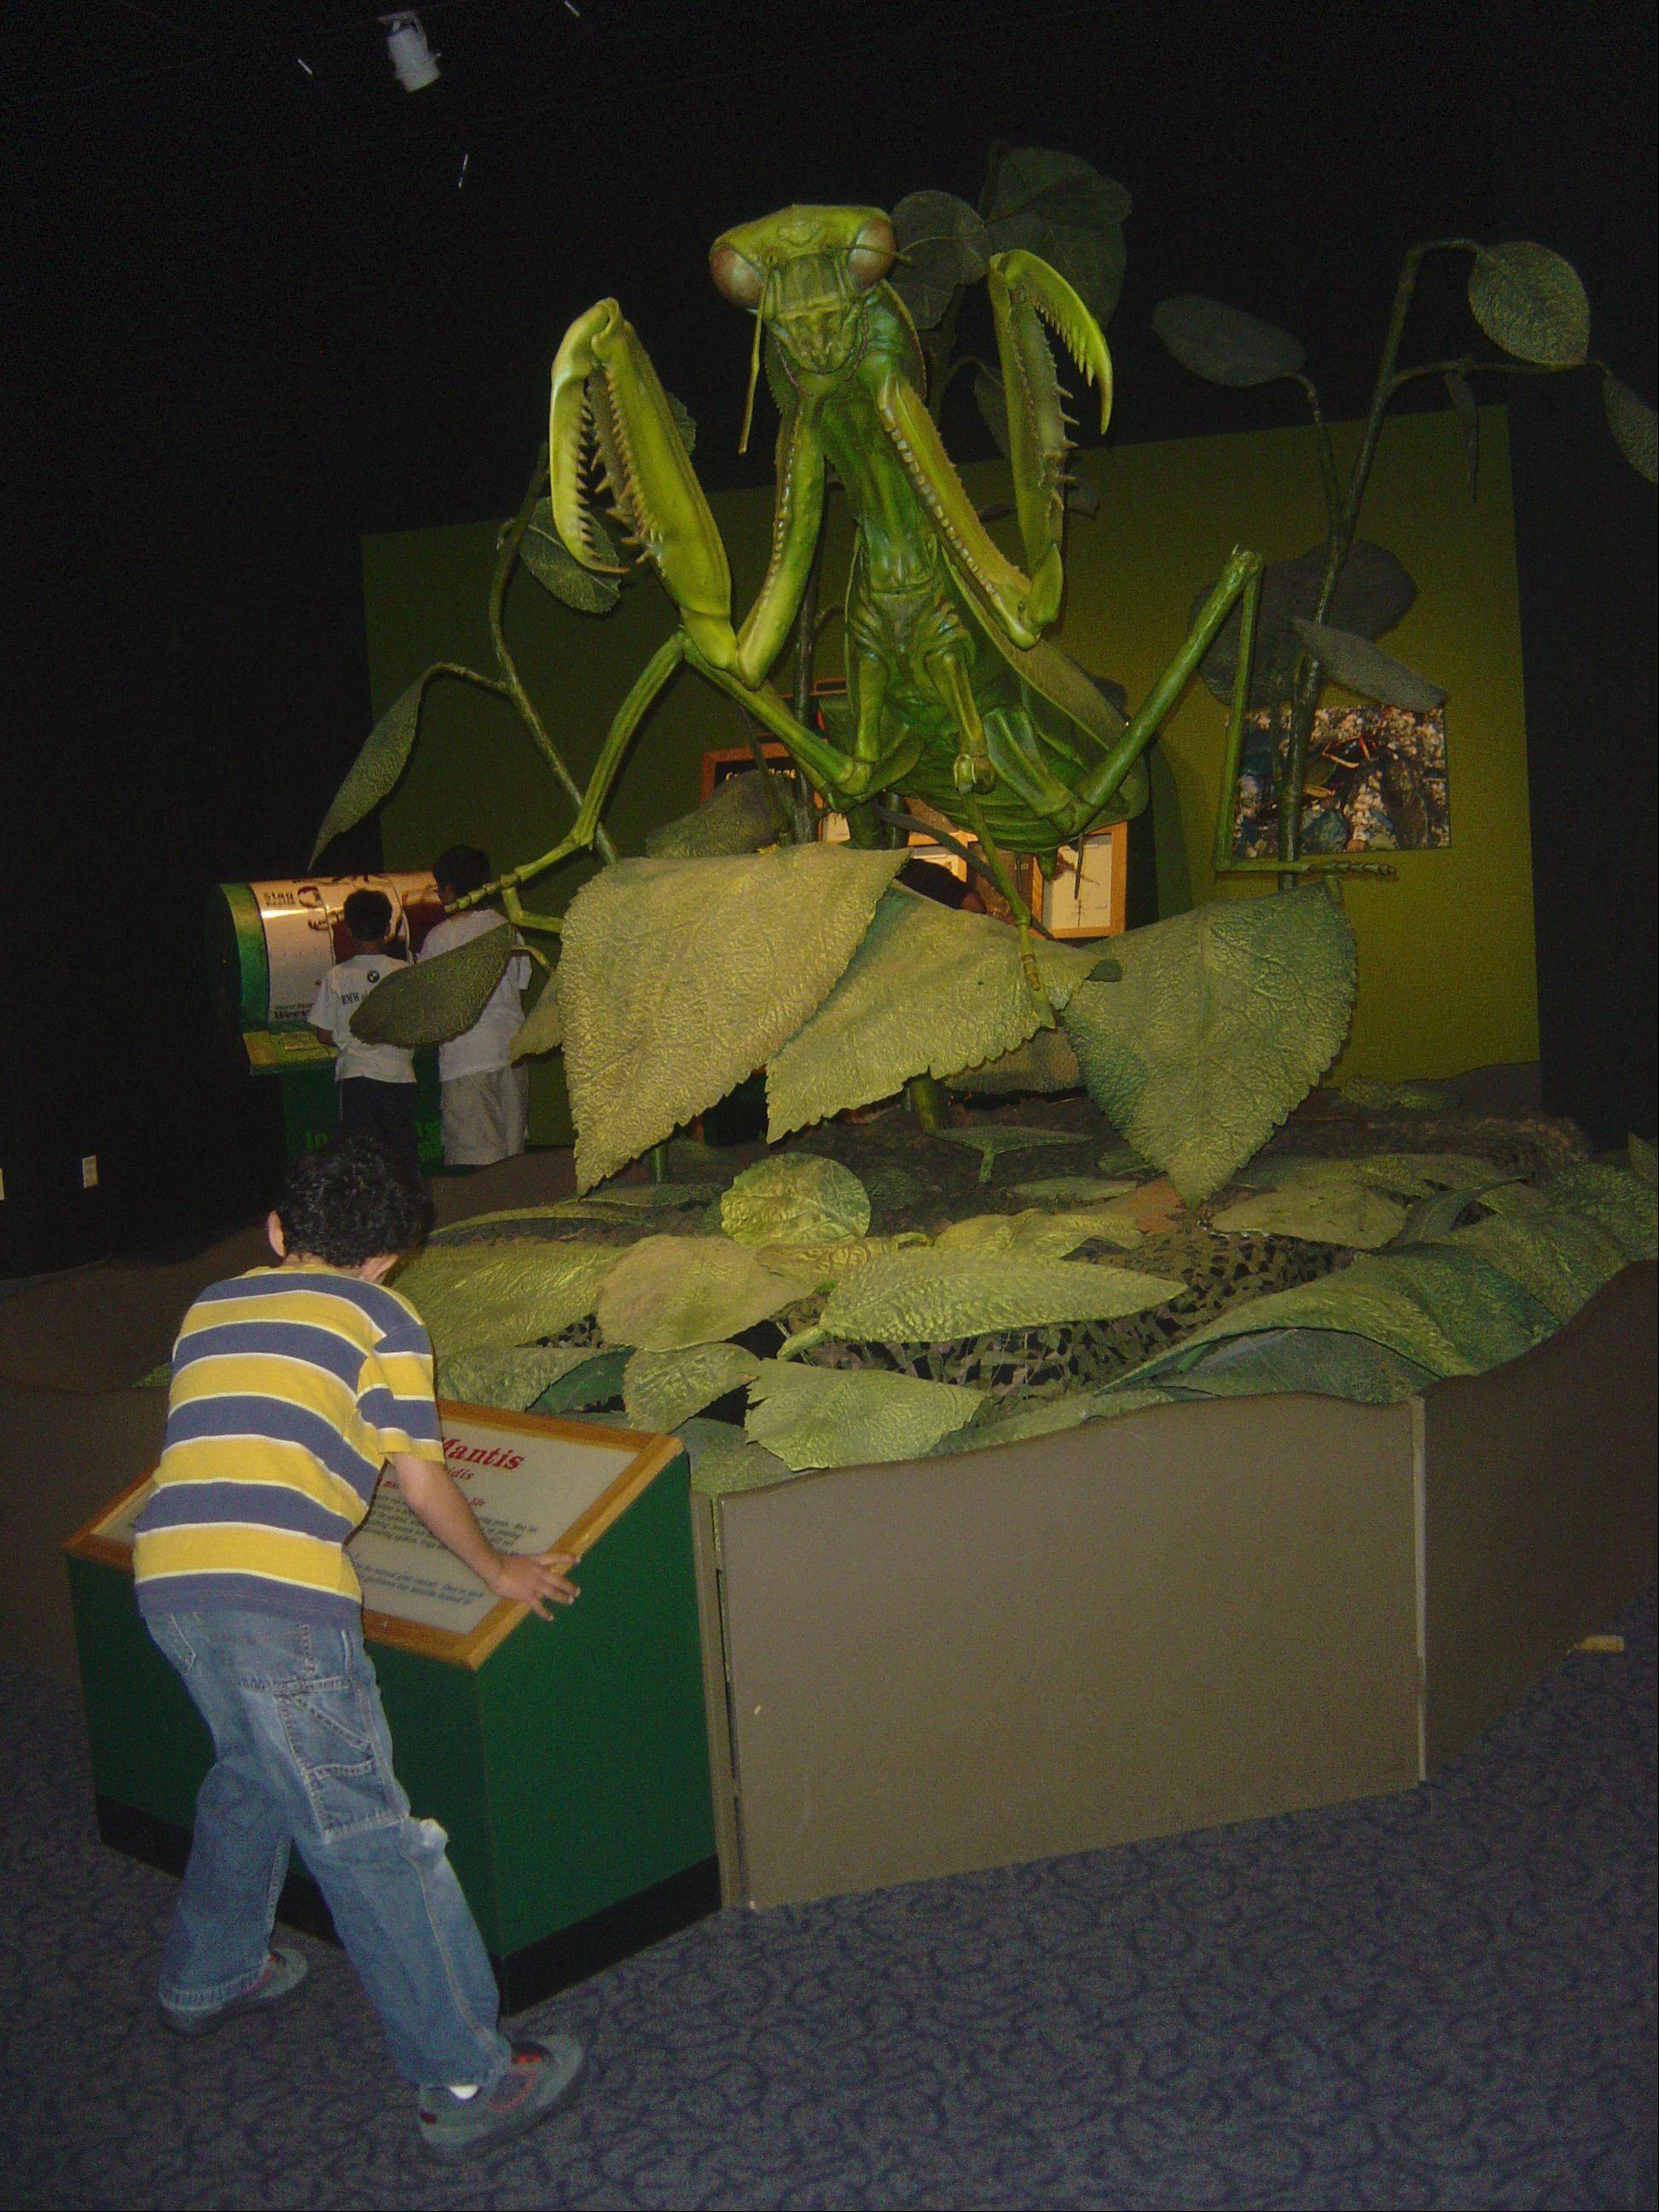 A praying mantis is one of the giant animatronic creatures found in the Backyard Monsters exhibit at the Peggy Notebaert Nature Museum.